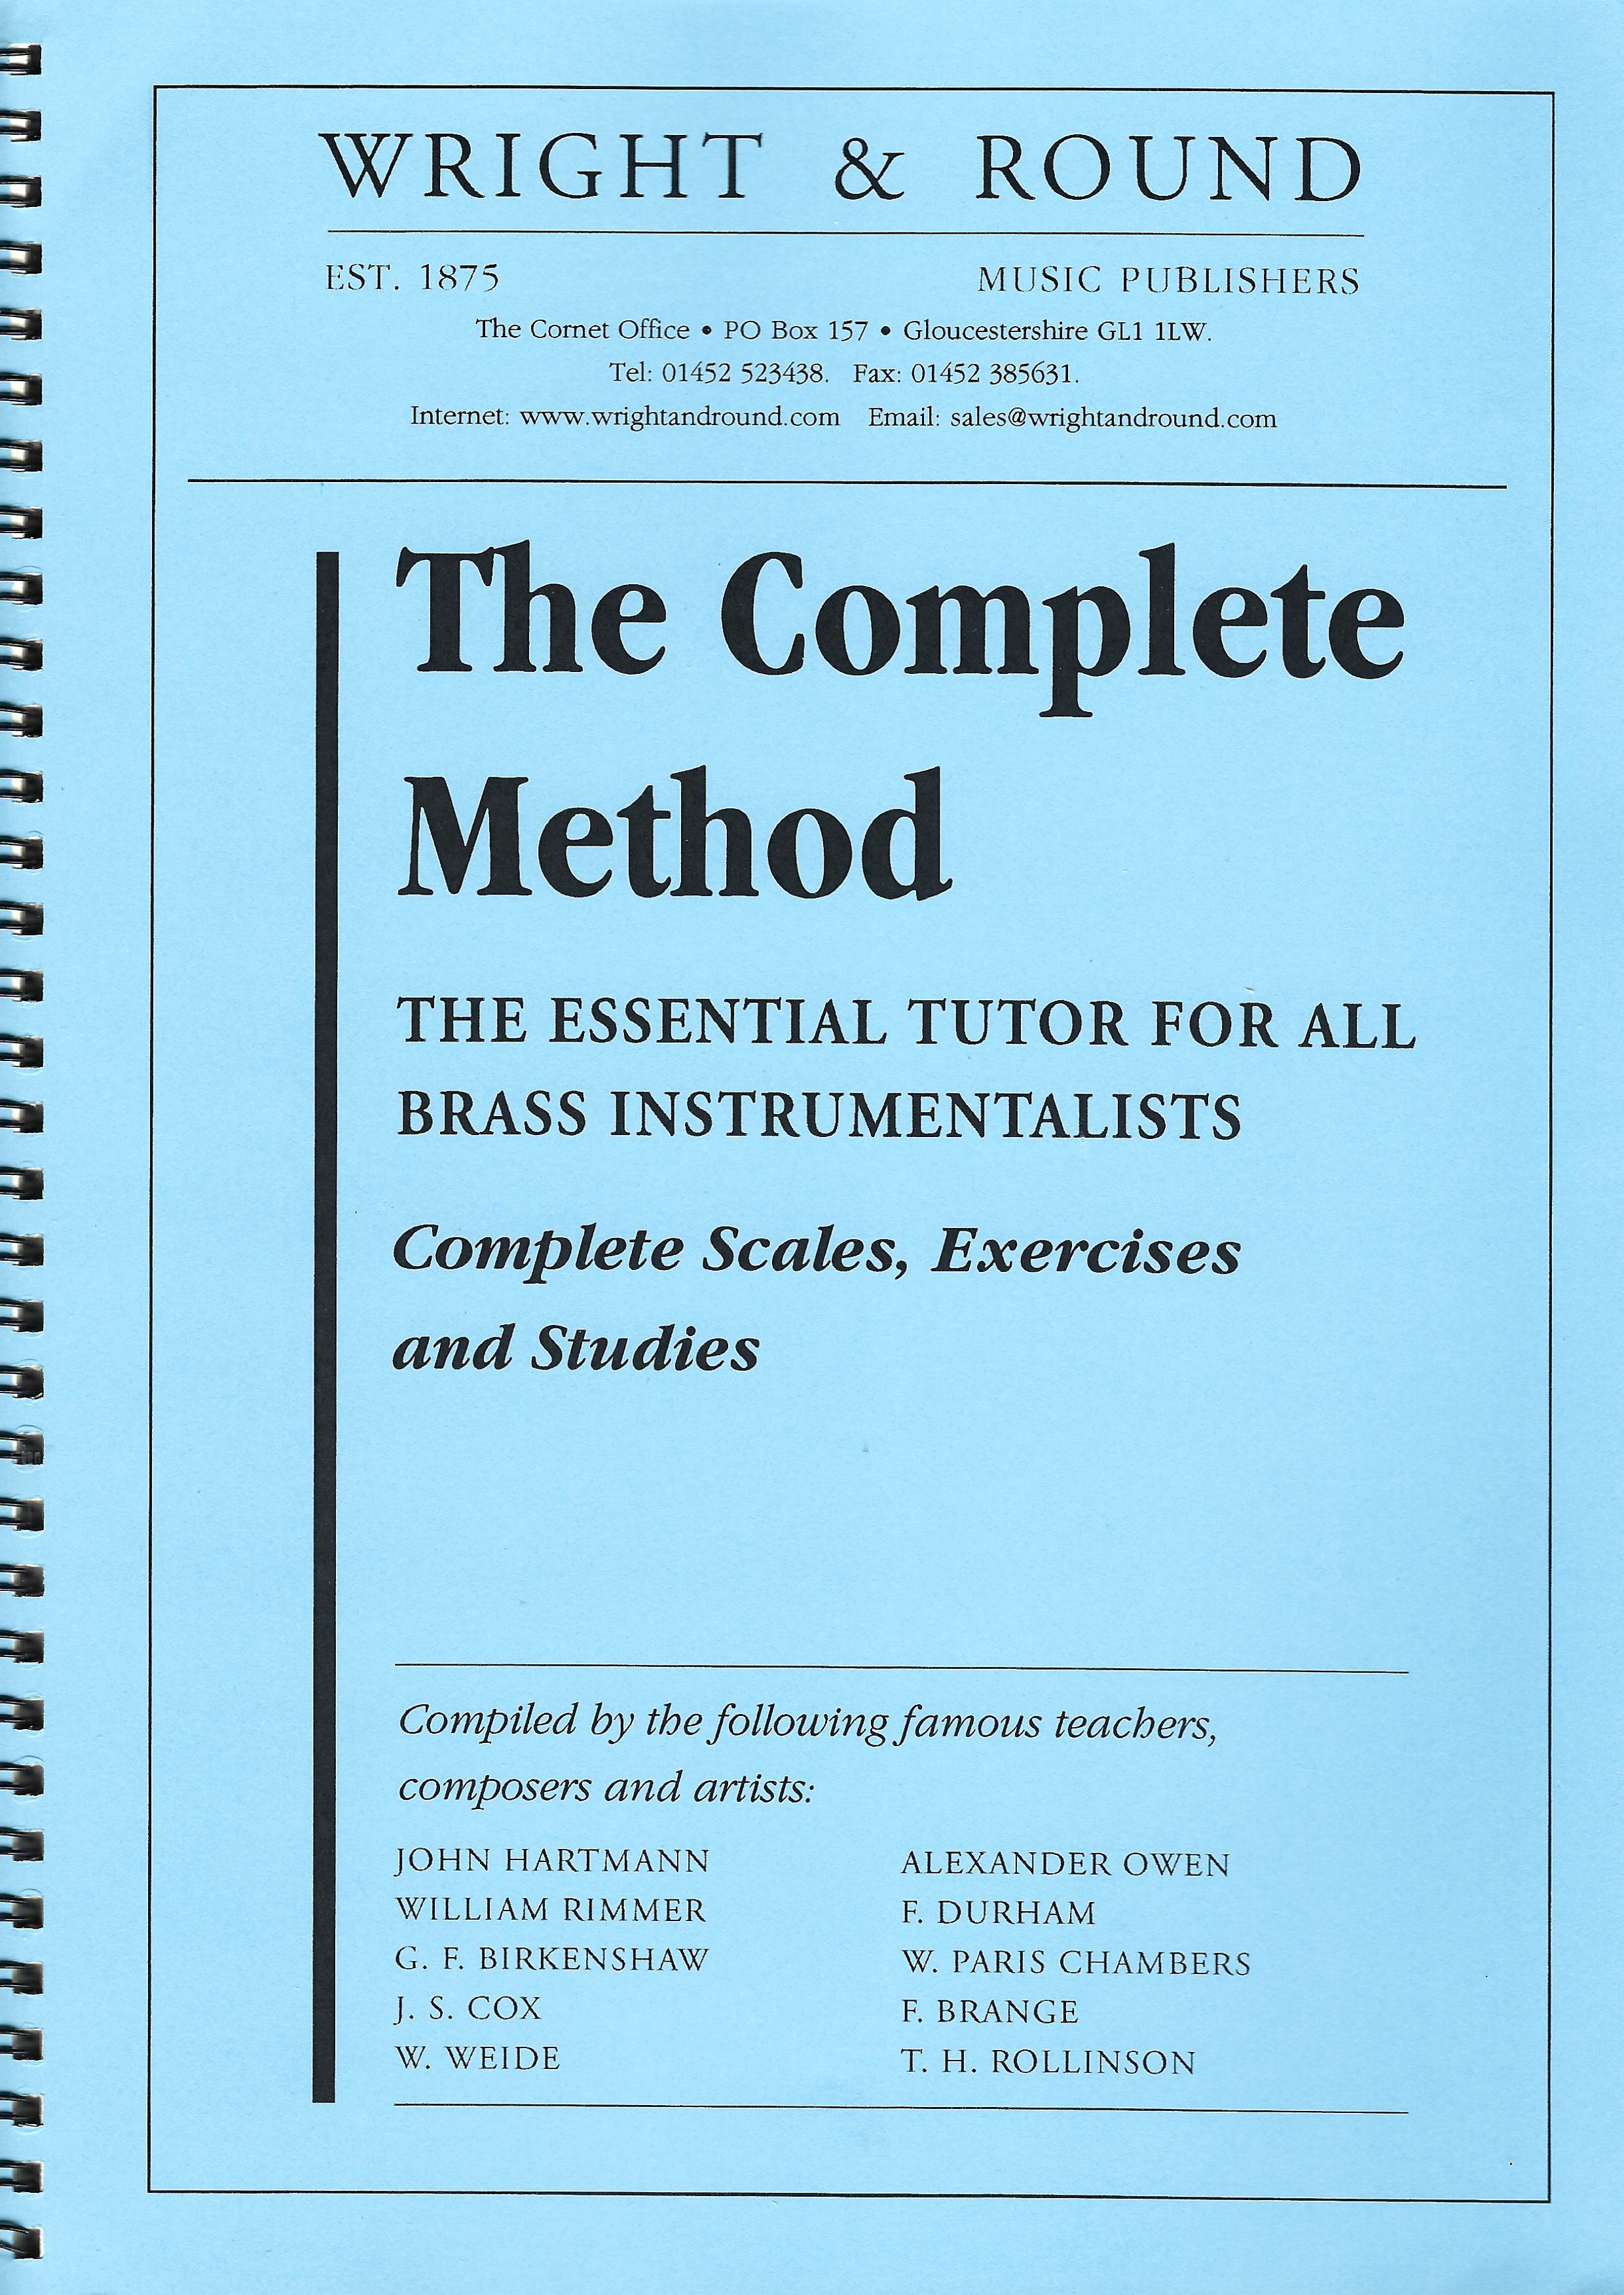 The Complete Method - The Essential Tutor for all brass Instrumentalists (Wright&Round)